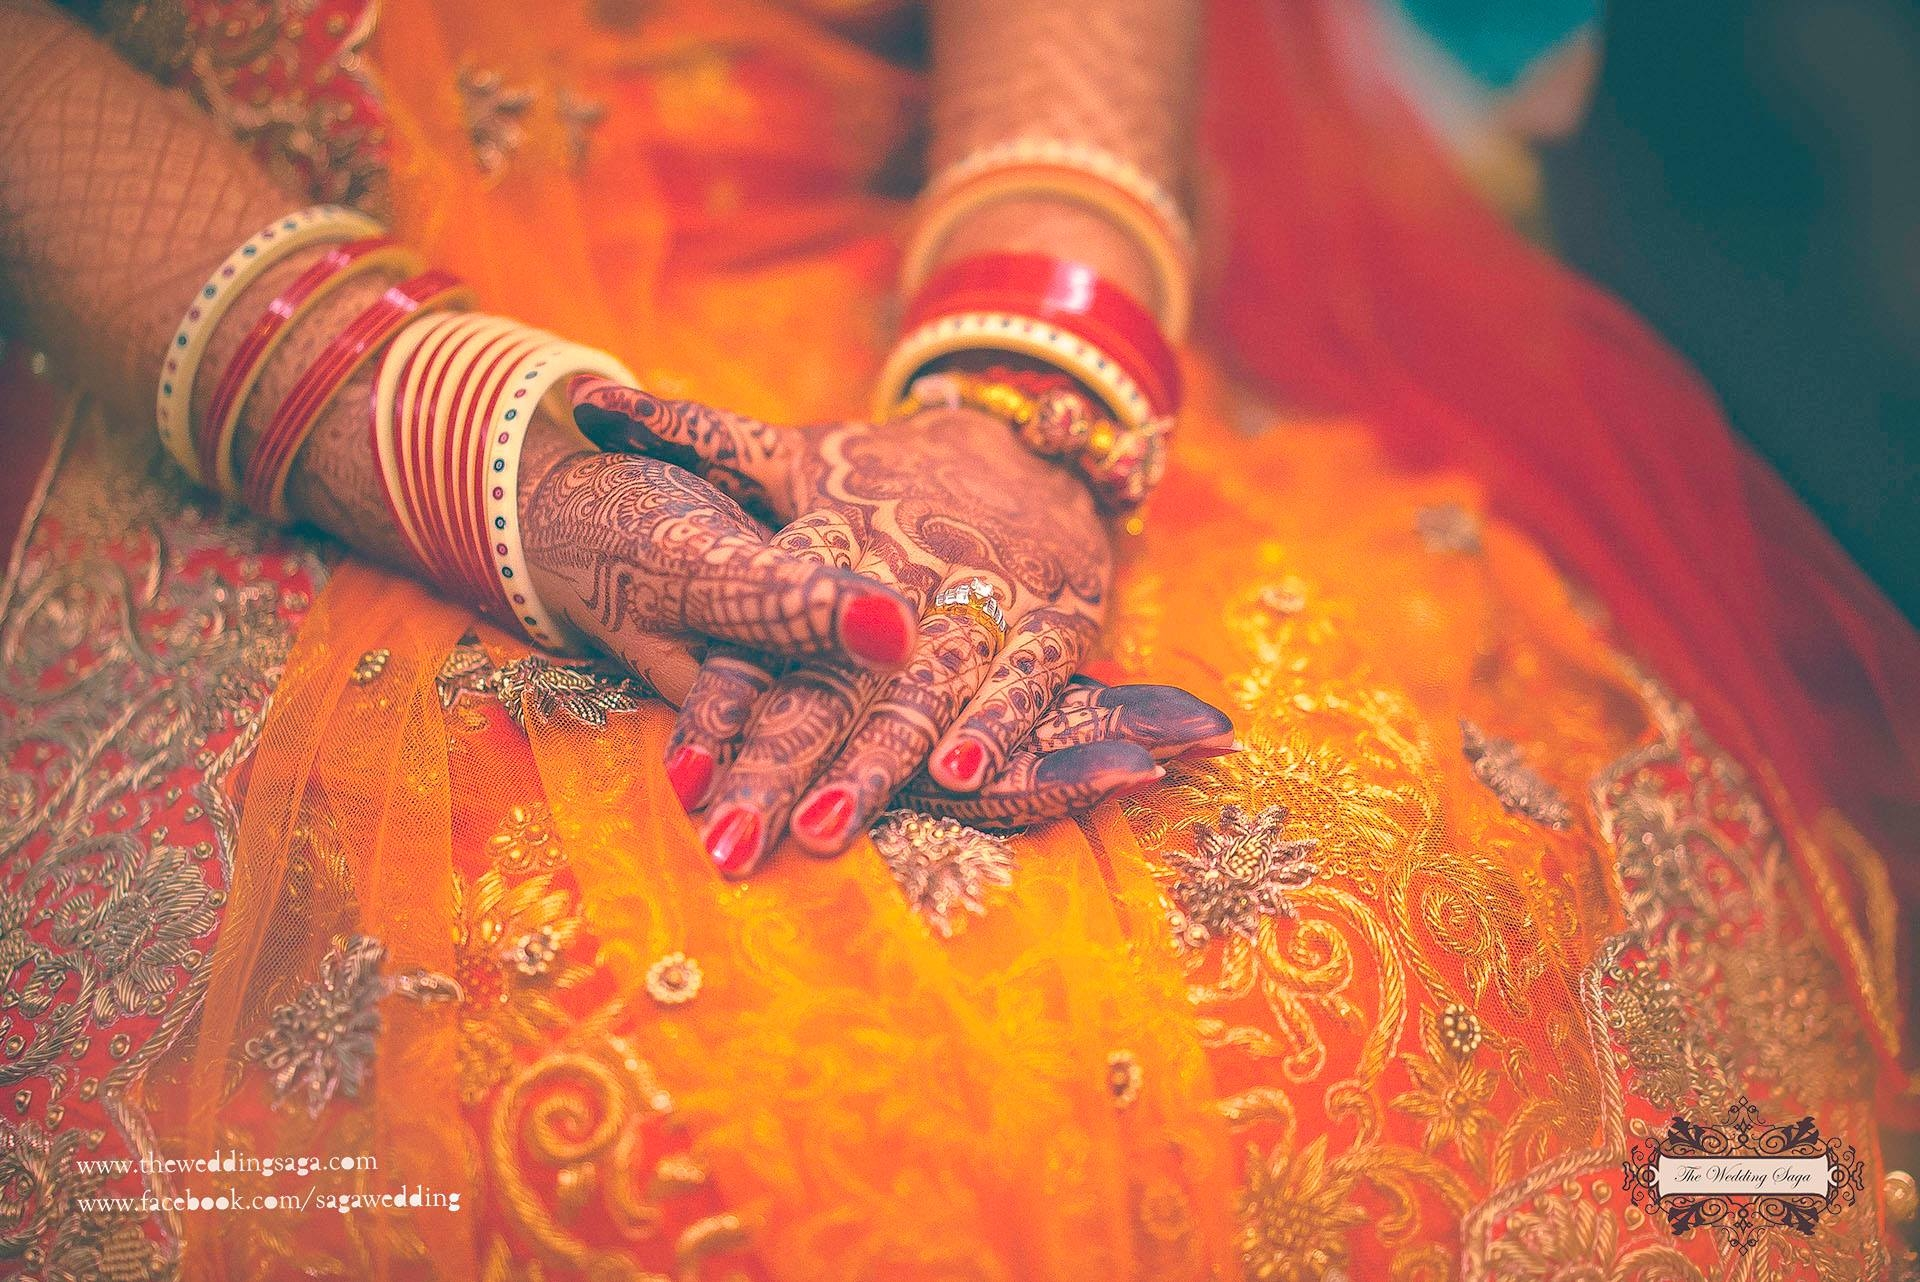 The Wedding Tales